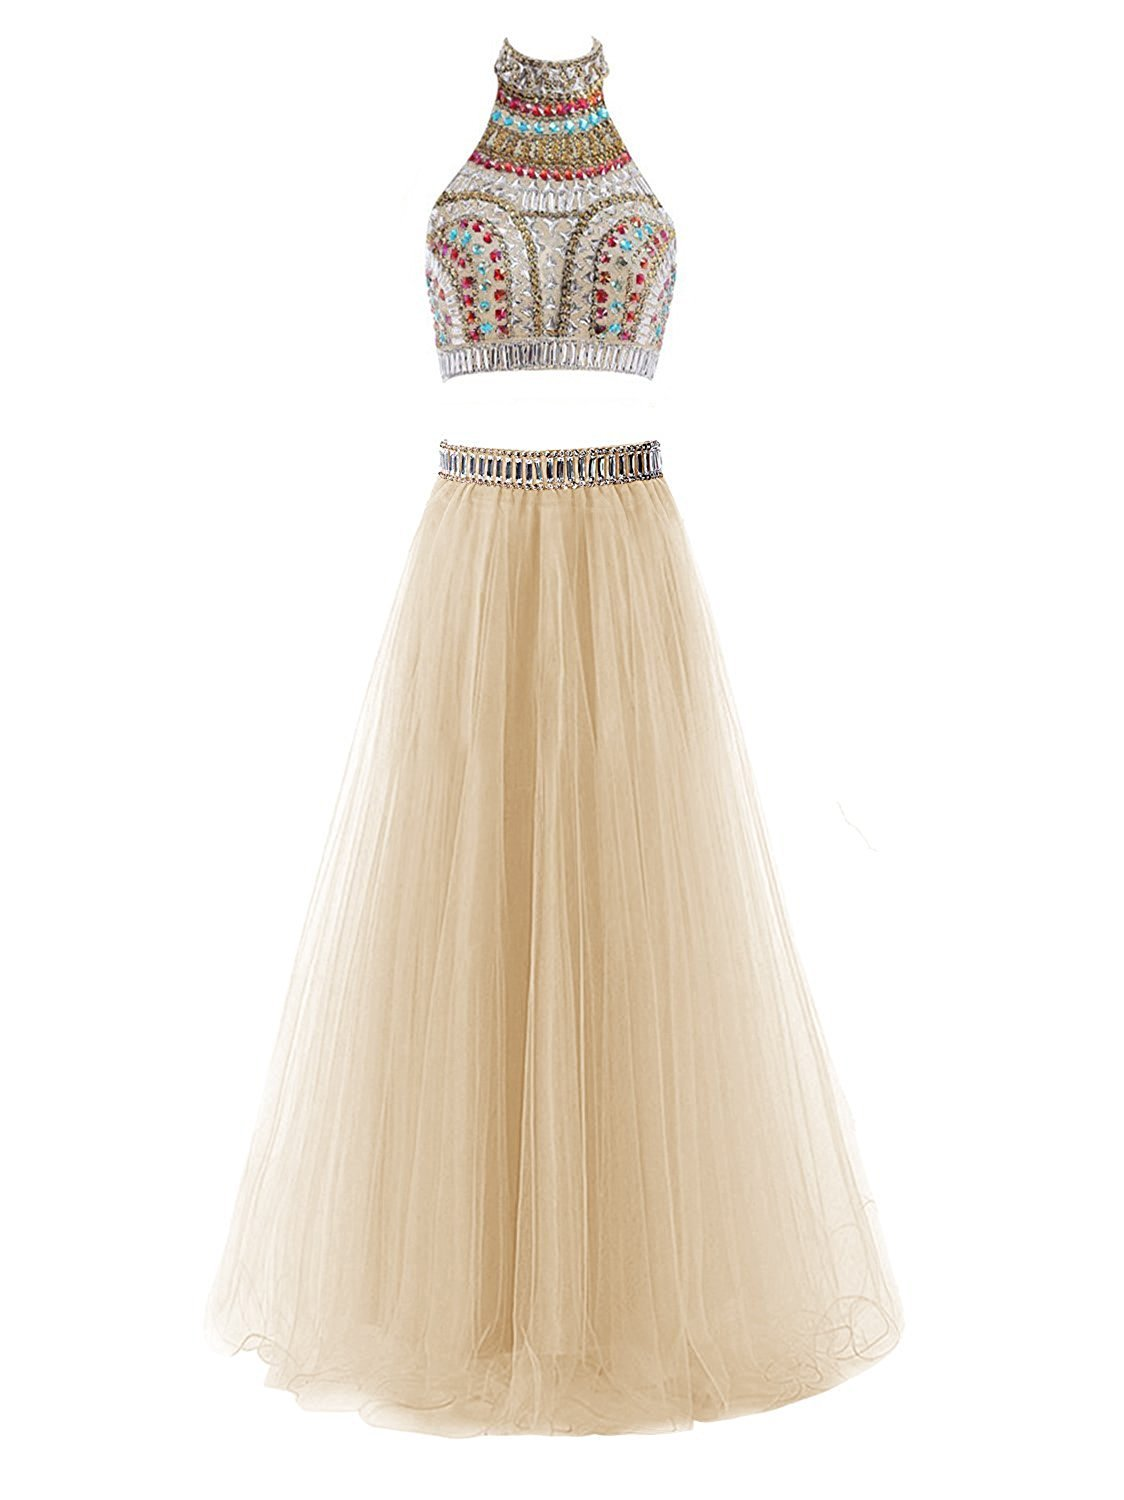 Primary image for Two Piece Halter Prom Dresses Long Tulle Formal Evening Party Gowns With Beads